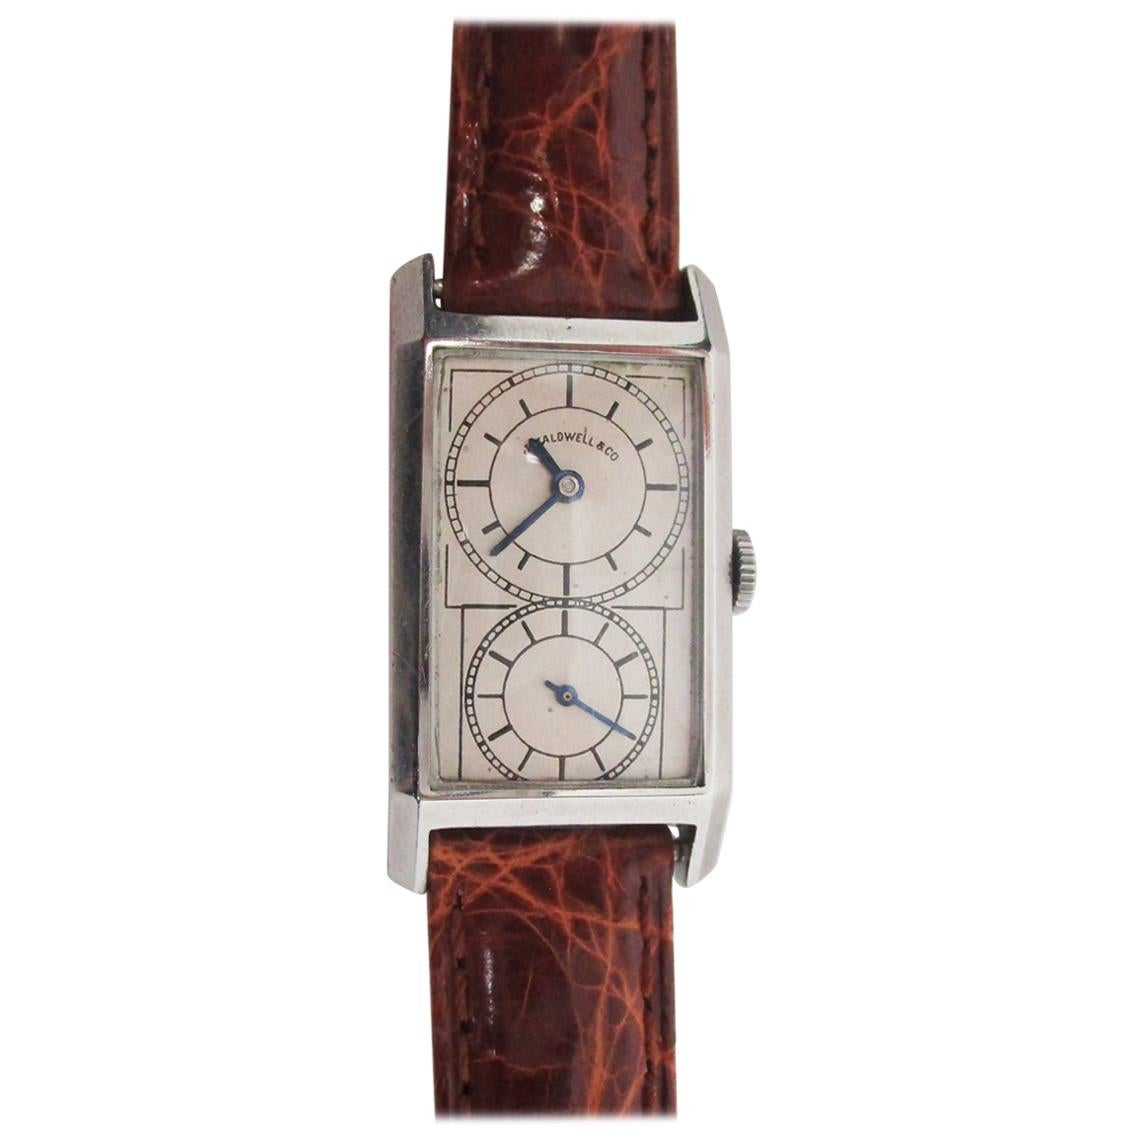 1920 Art Deco J E Caldwell Stainless Steel Prince Doctor's Watch Crocodile Strap